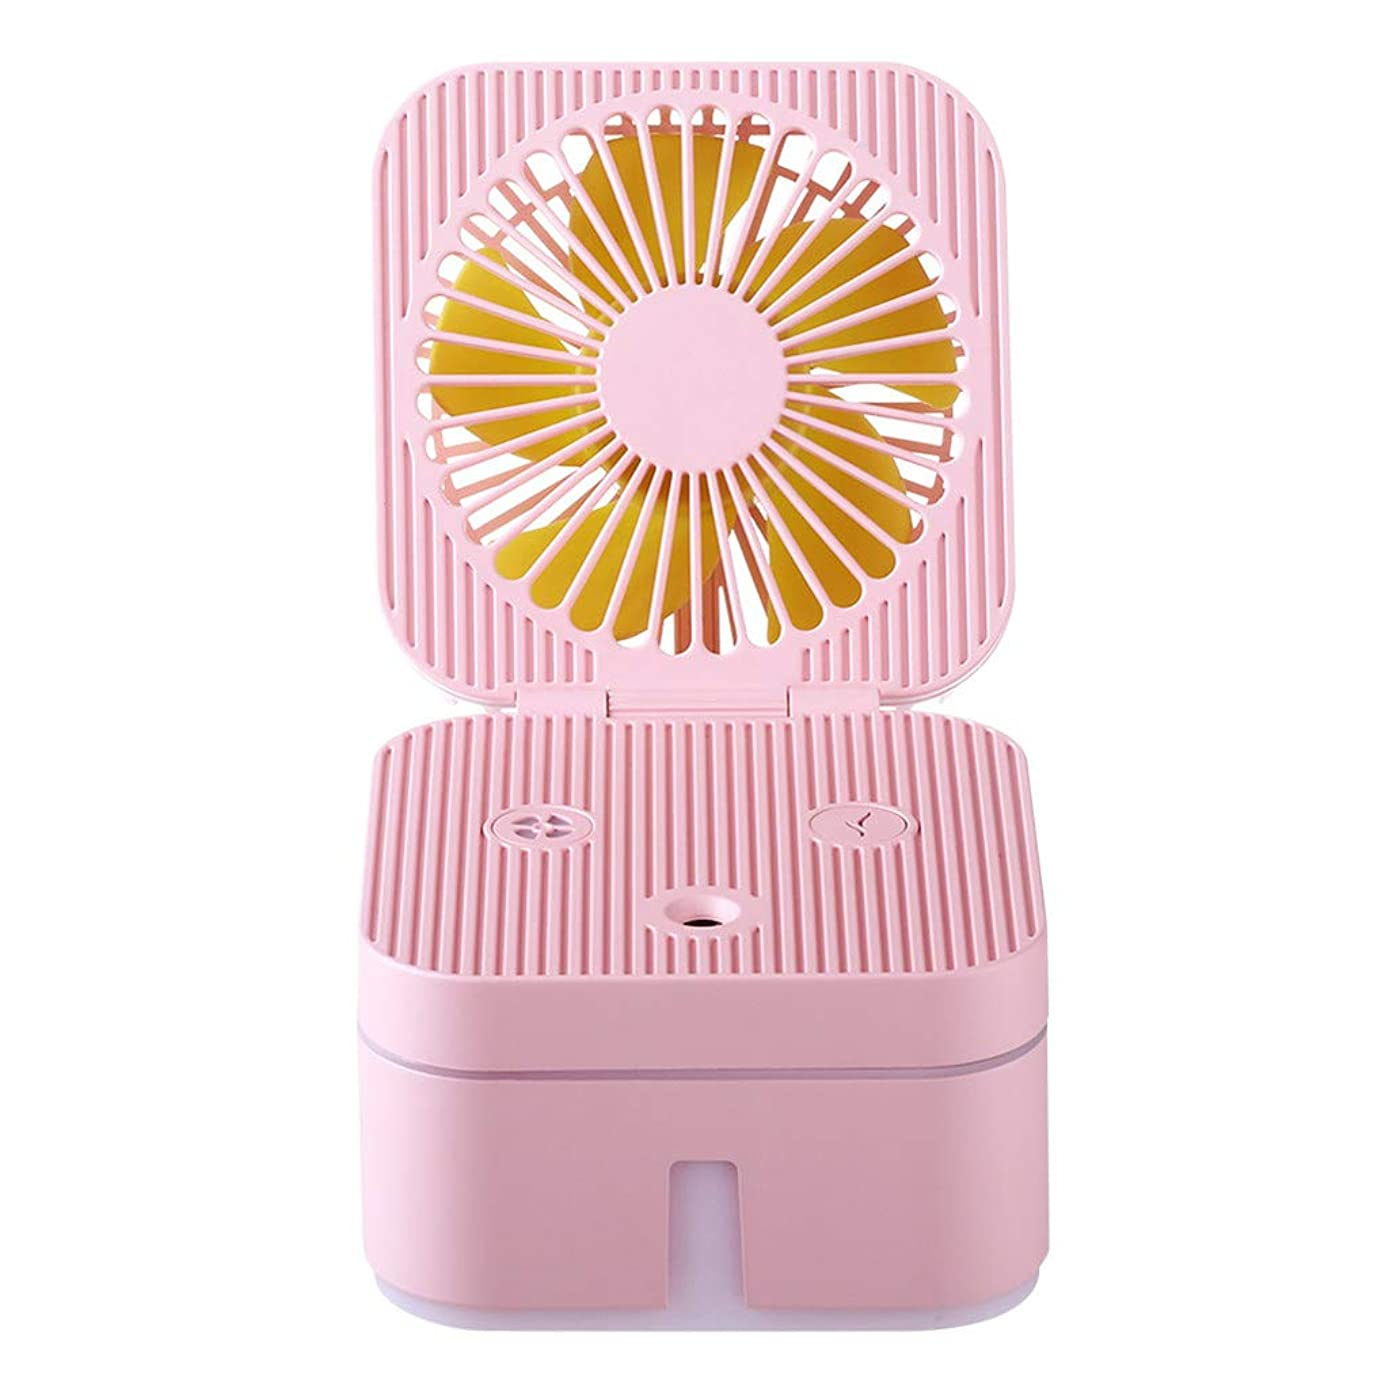 Philoween Humidifier with Atmosphere Lamp Office Portable Air Purification Humidifier Fan Mini Fan Portable Fan for Office Home Travel